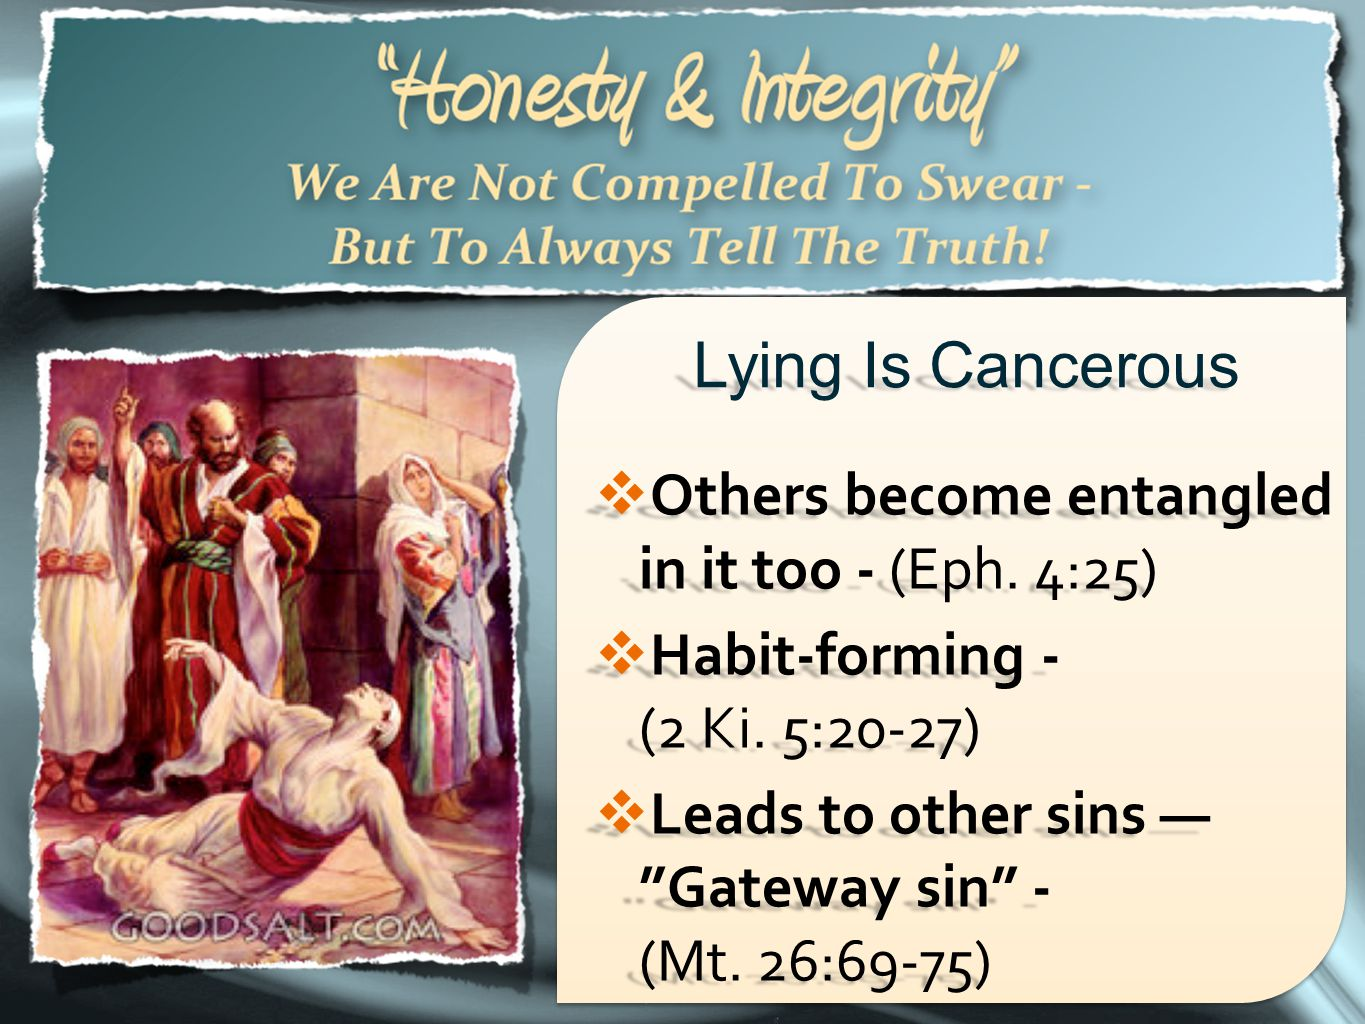 Lying Is Cancerous Others become entangled in it too - (Eph. 4:25)